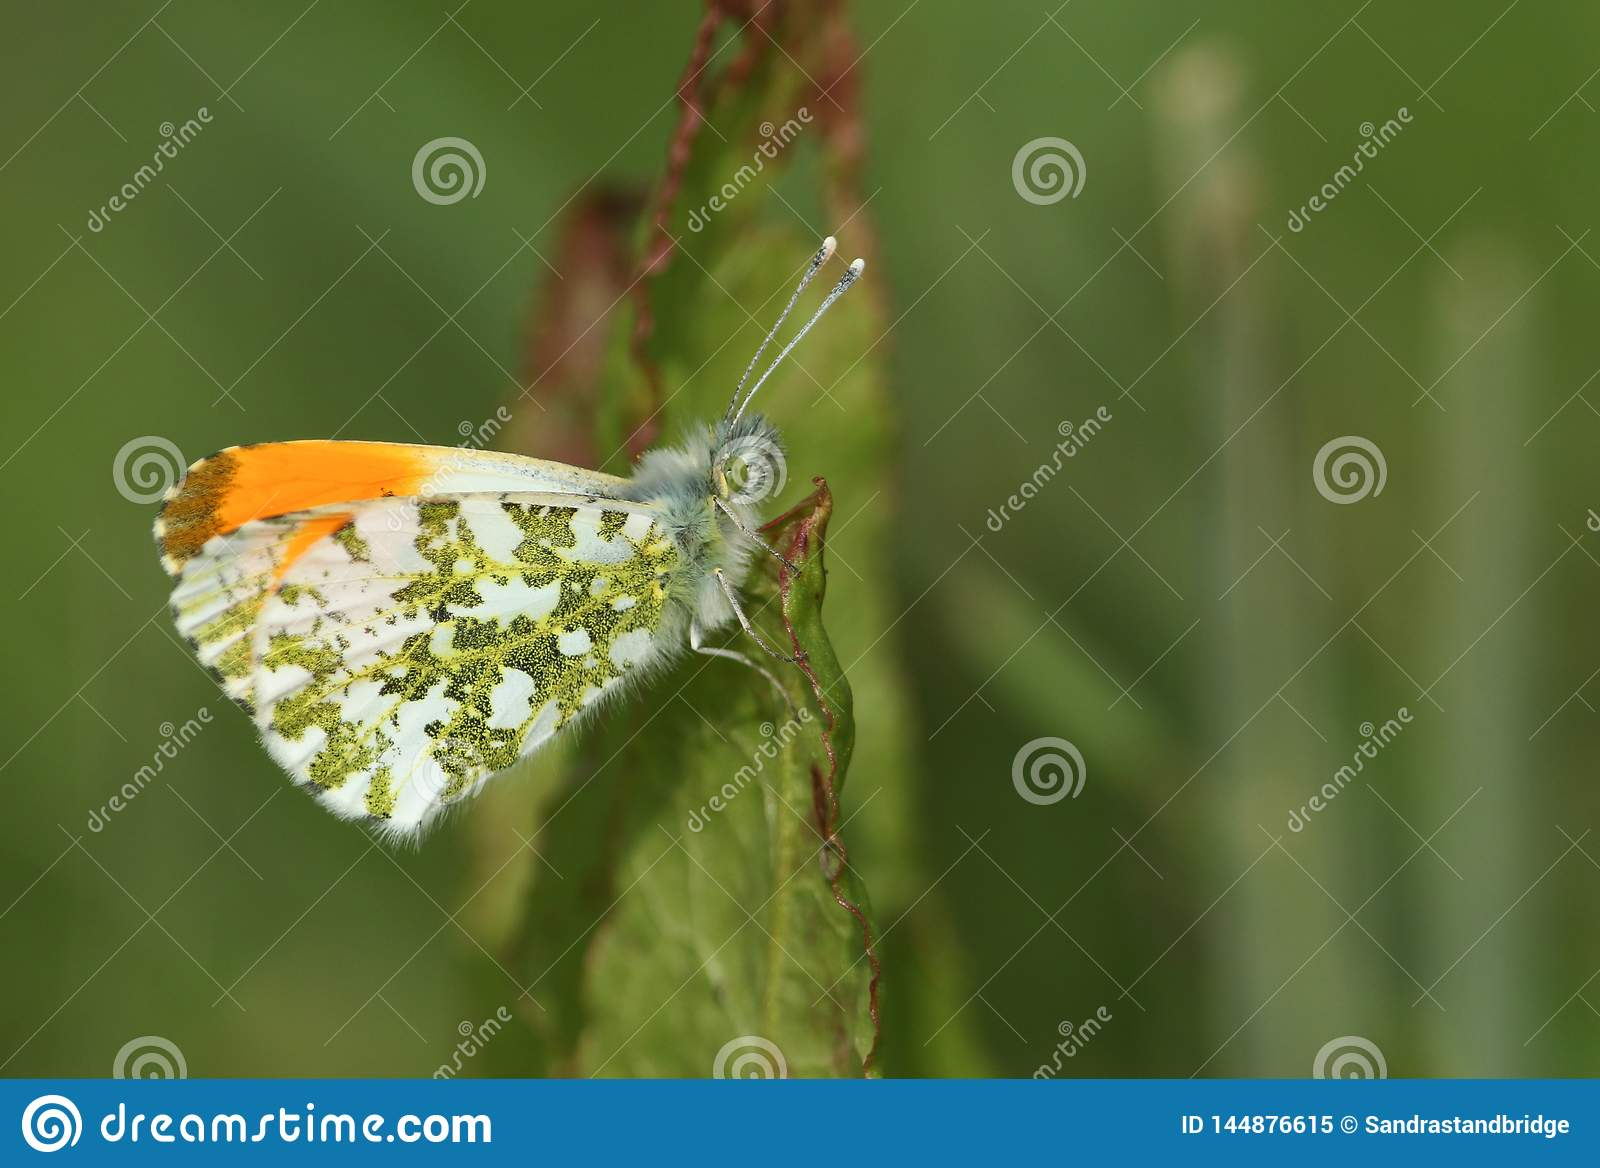 A newly emerged male Orange-tip Butterfly, Anthocharis cardamines, perched on a leaf.